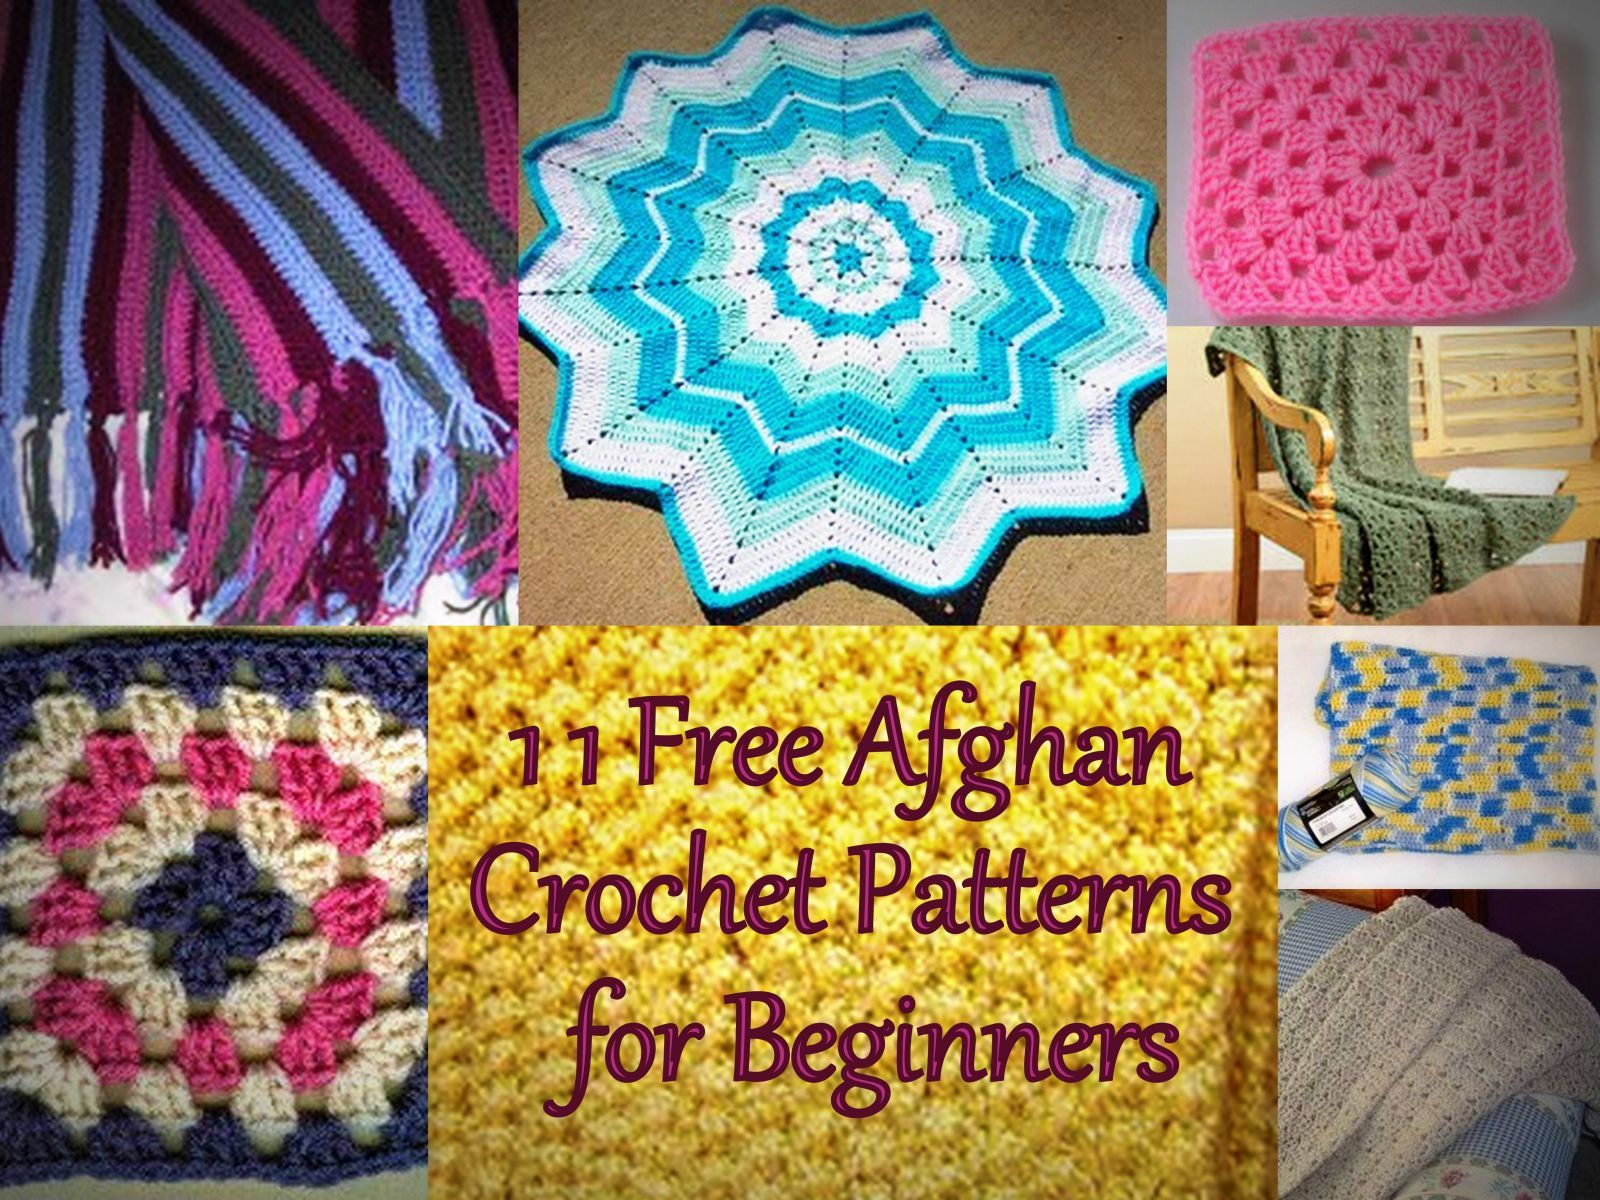 26 free crochet afghan patterns for beginners afghan crochet 26 free crochet afghan patterns for beginners bankloansurffo Gallery